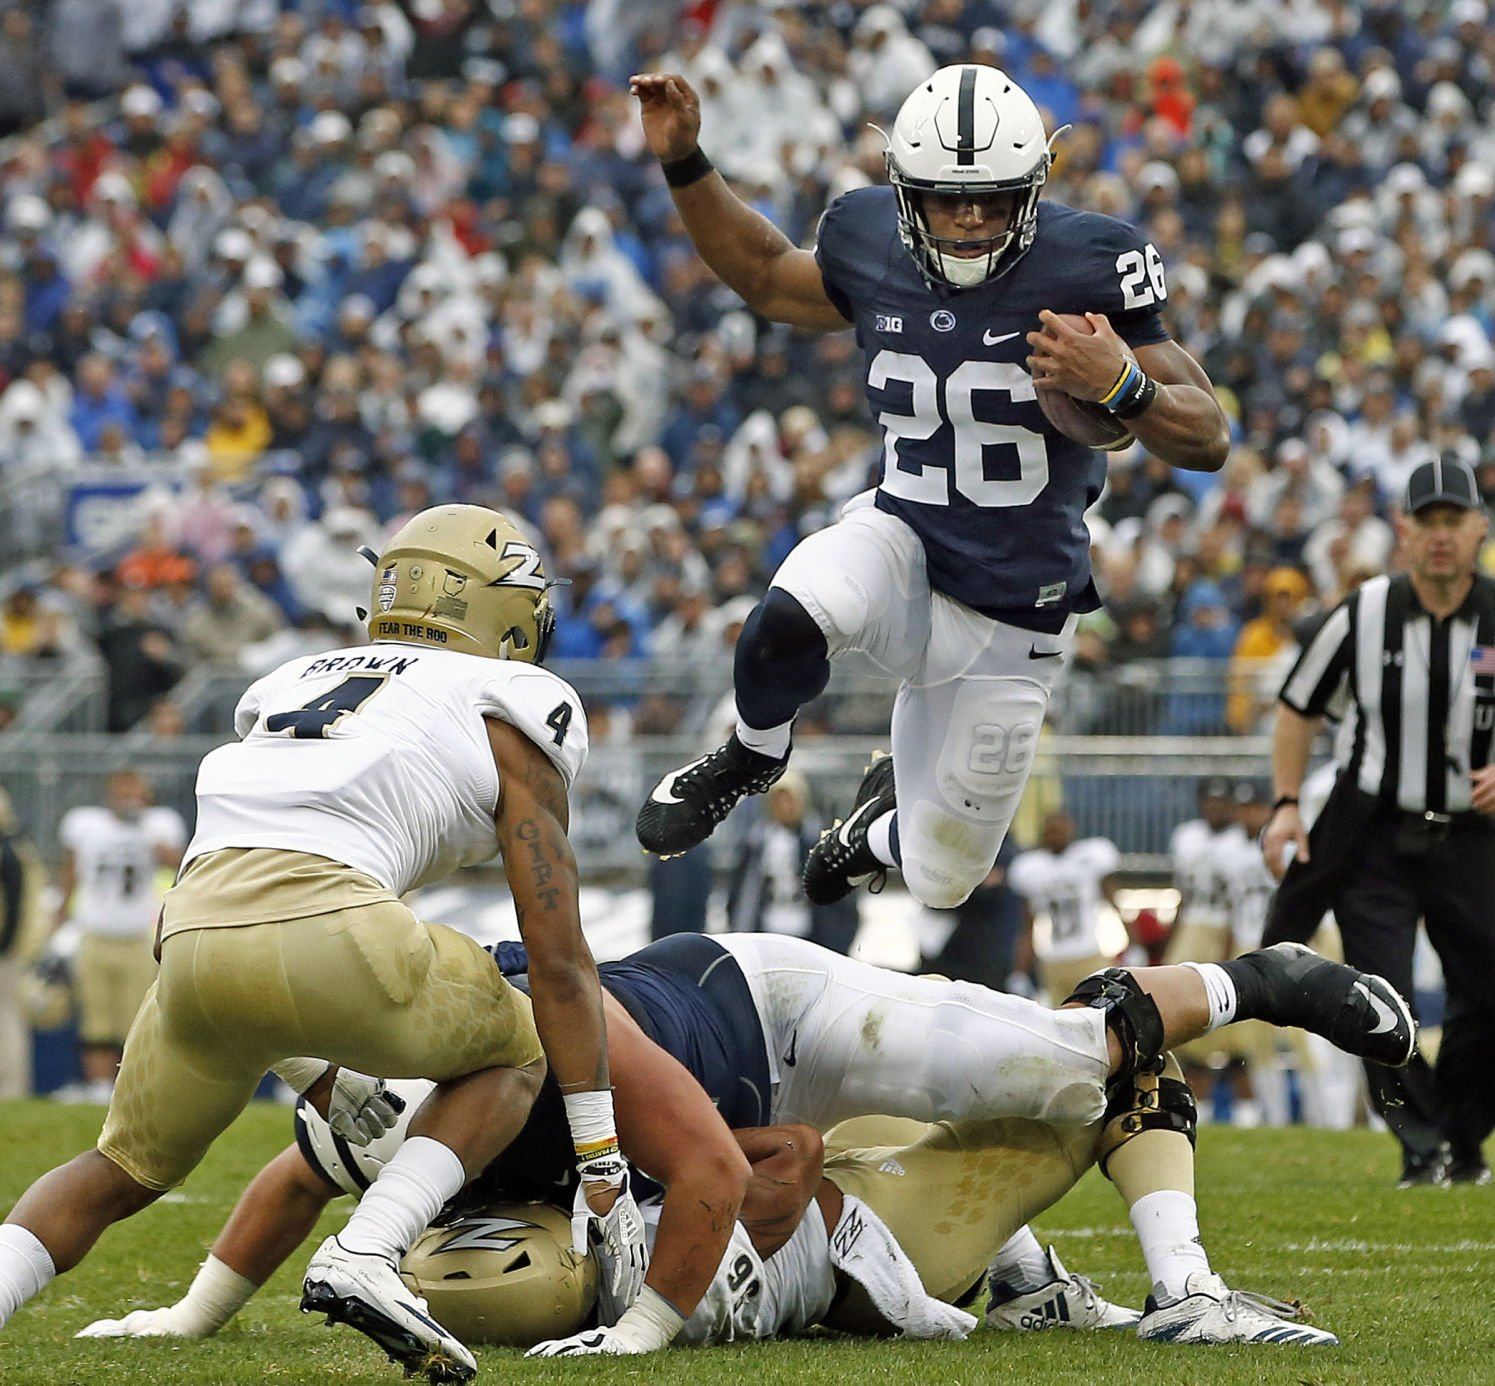 No. 6 Penn St. routs Akron, 52-0, at Beaver Stadium